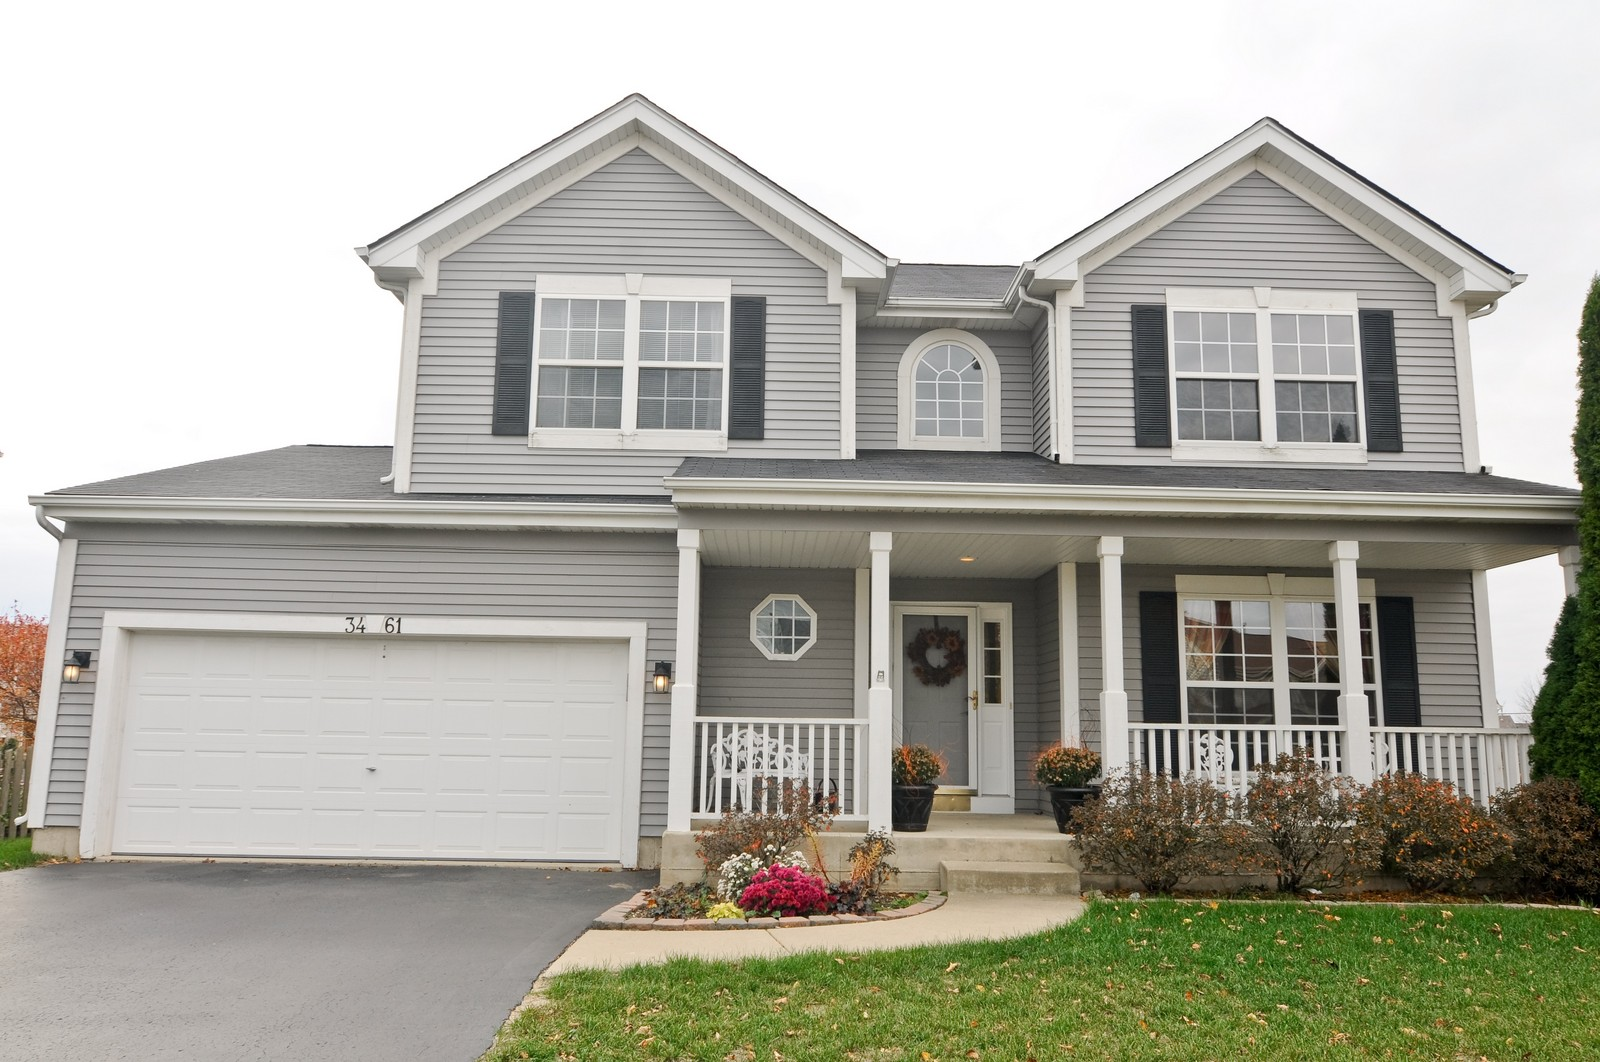 Real Estate Photography - 3461 Chadwick Lane, Lake in the Hills, IL, 60156 - Front View